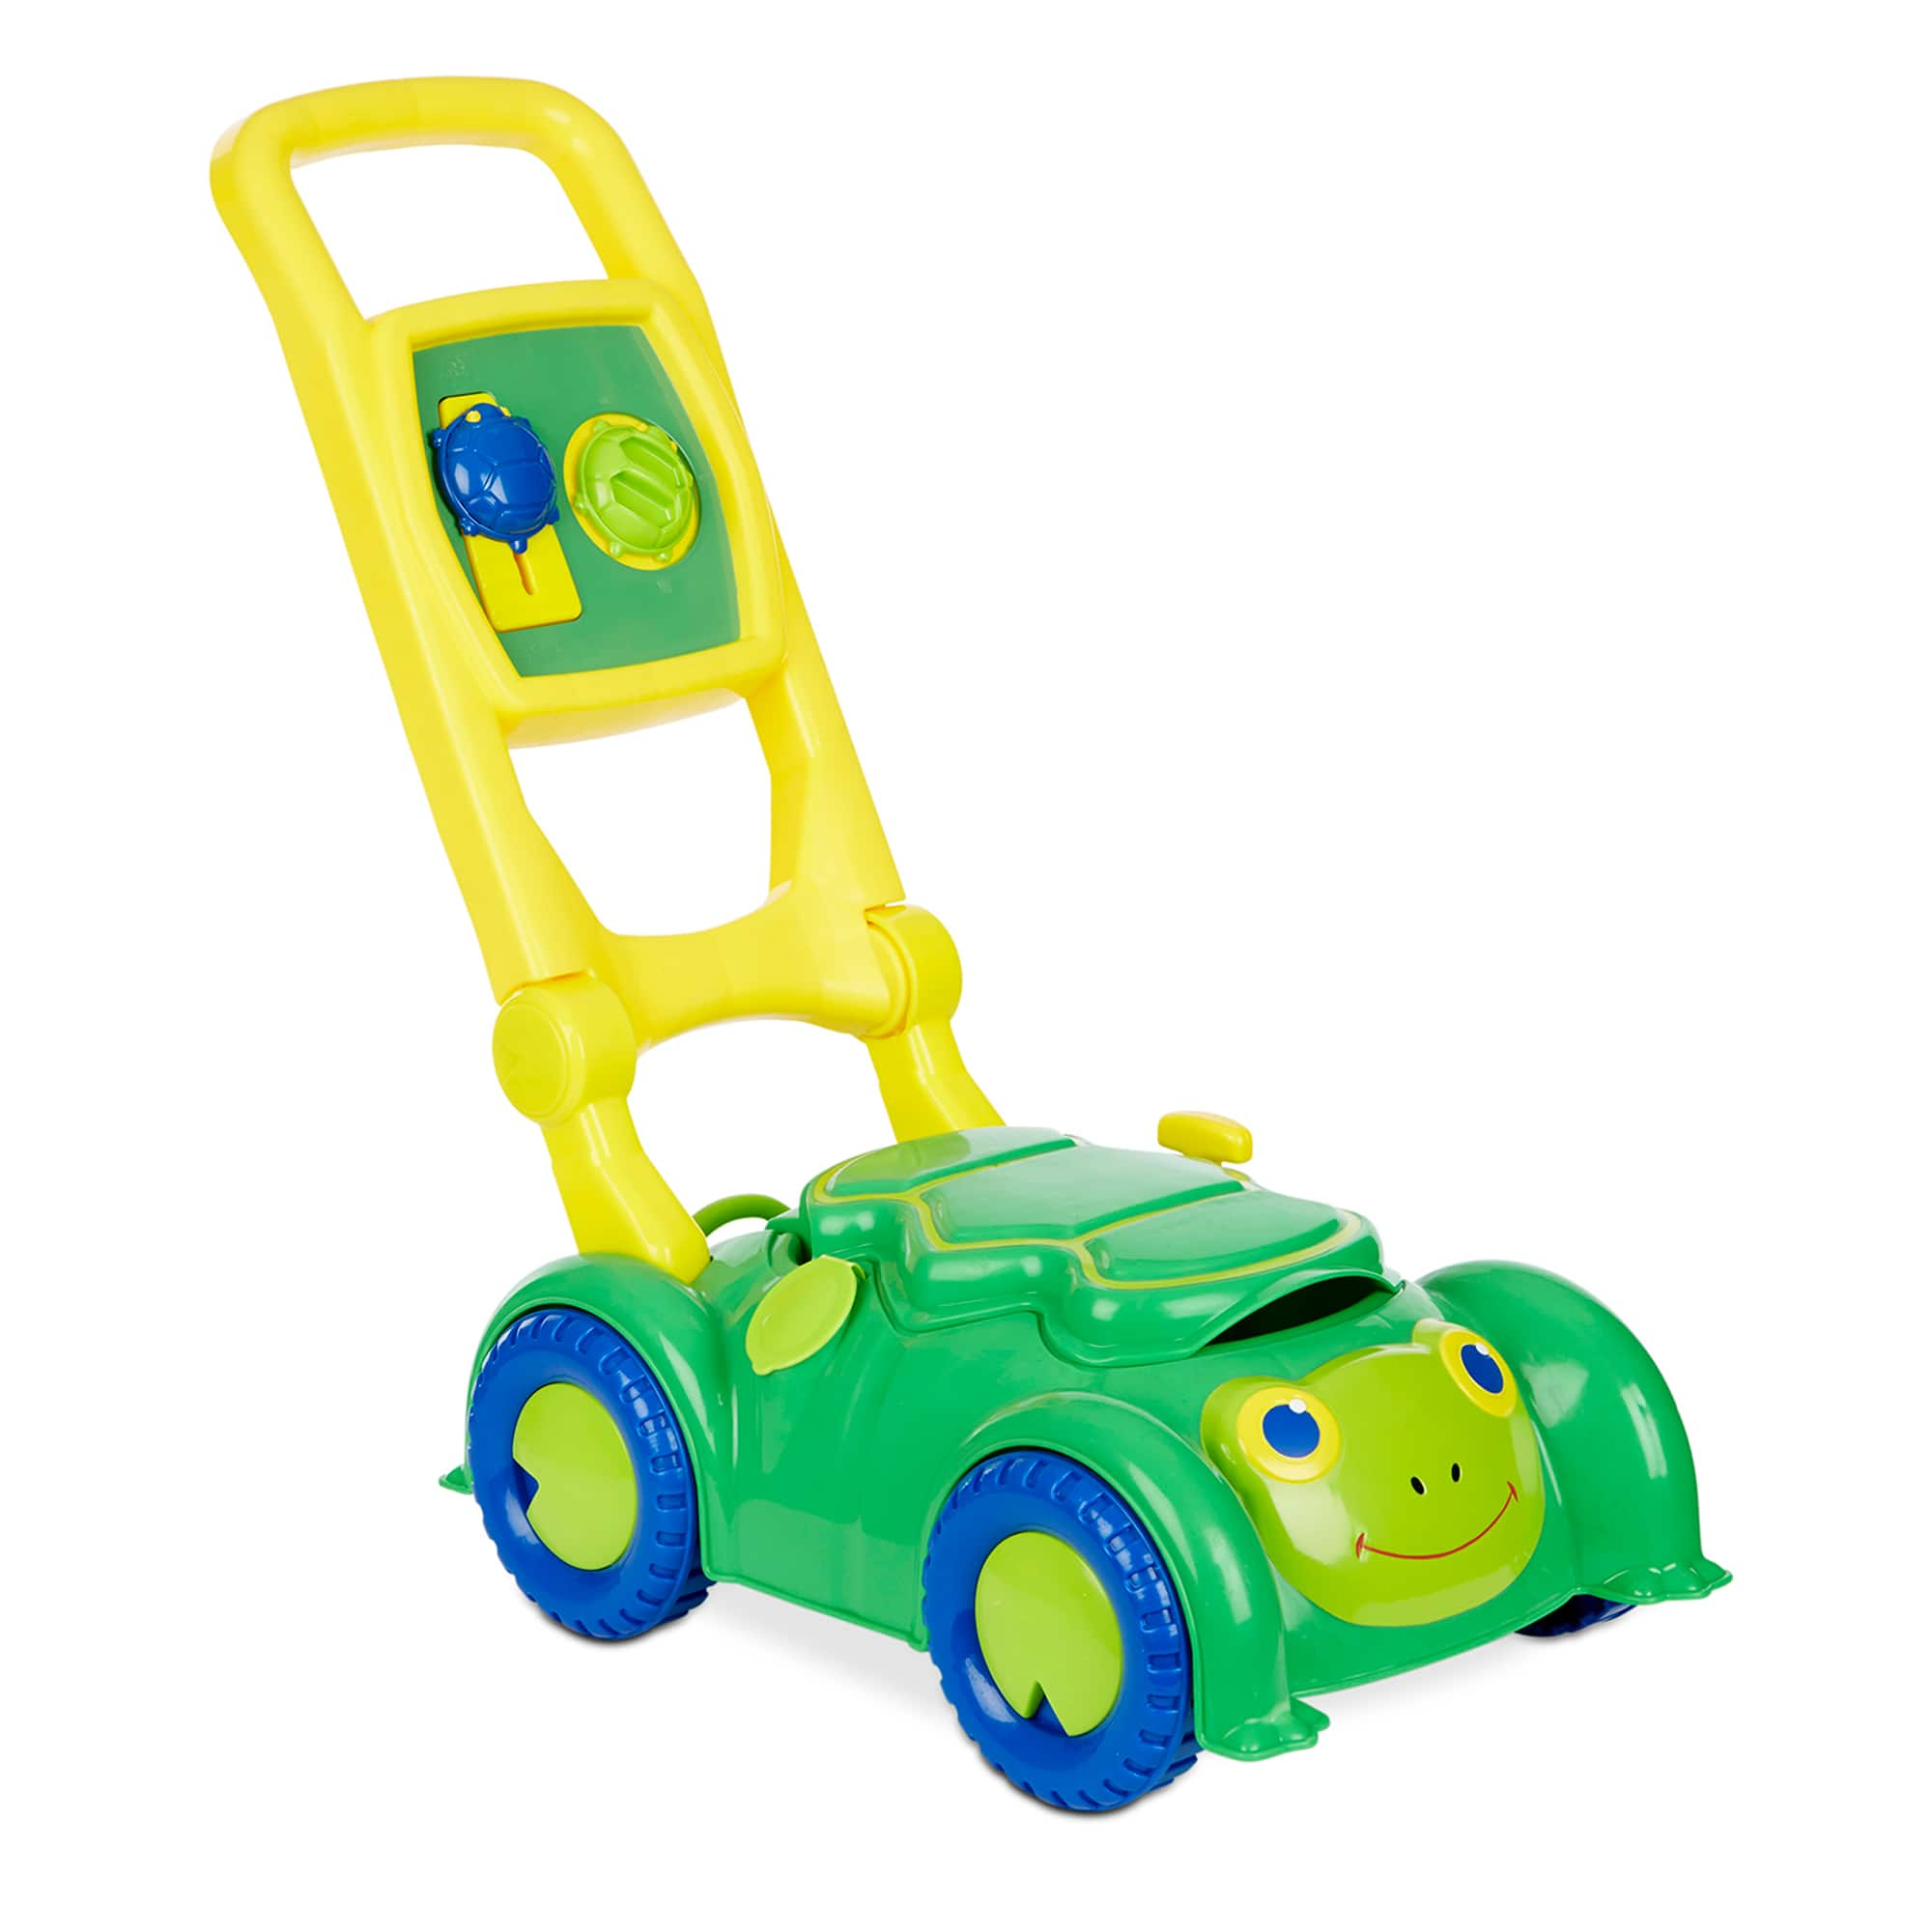 Melissa & Doug Sunny Patch Snappy Turtle Mower $12.88. F/S for Walmart+ Members (Pickup not available)